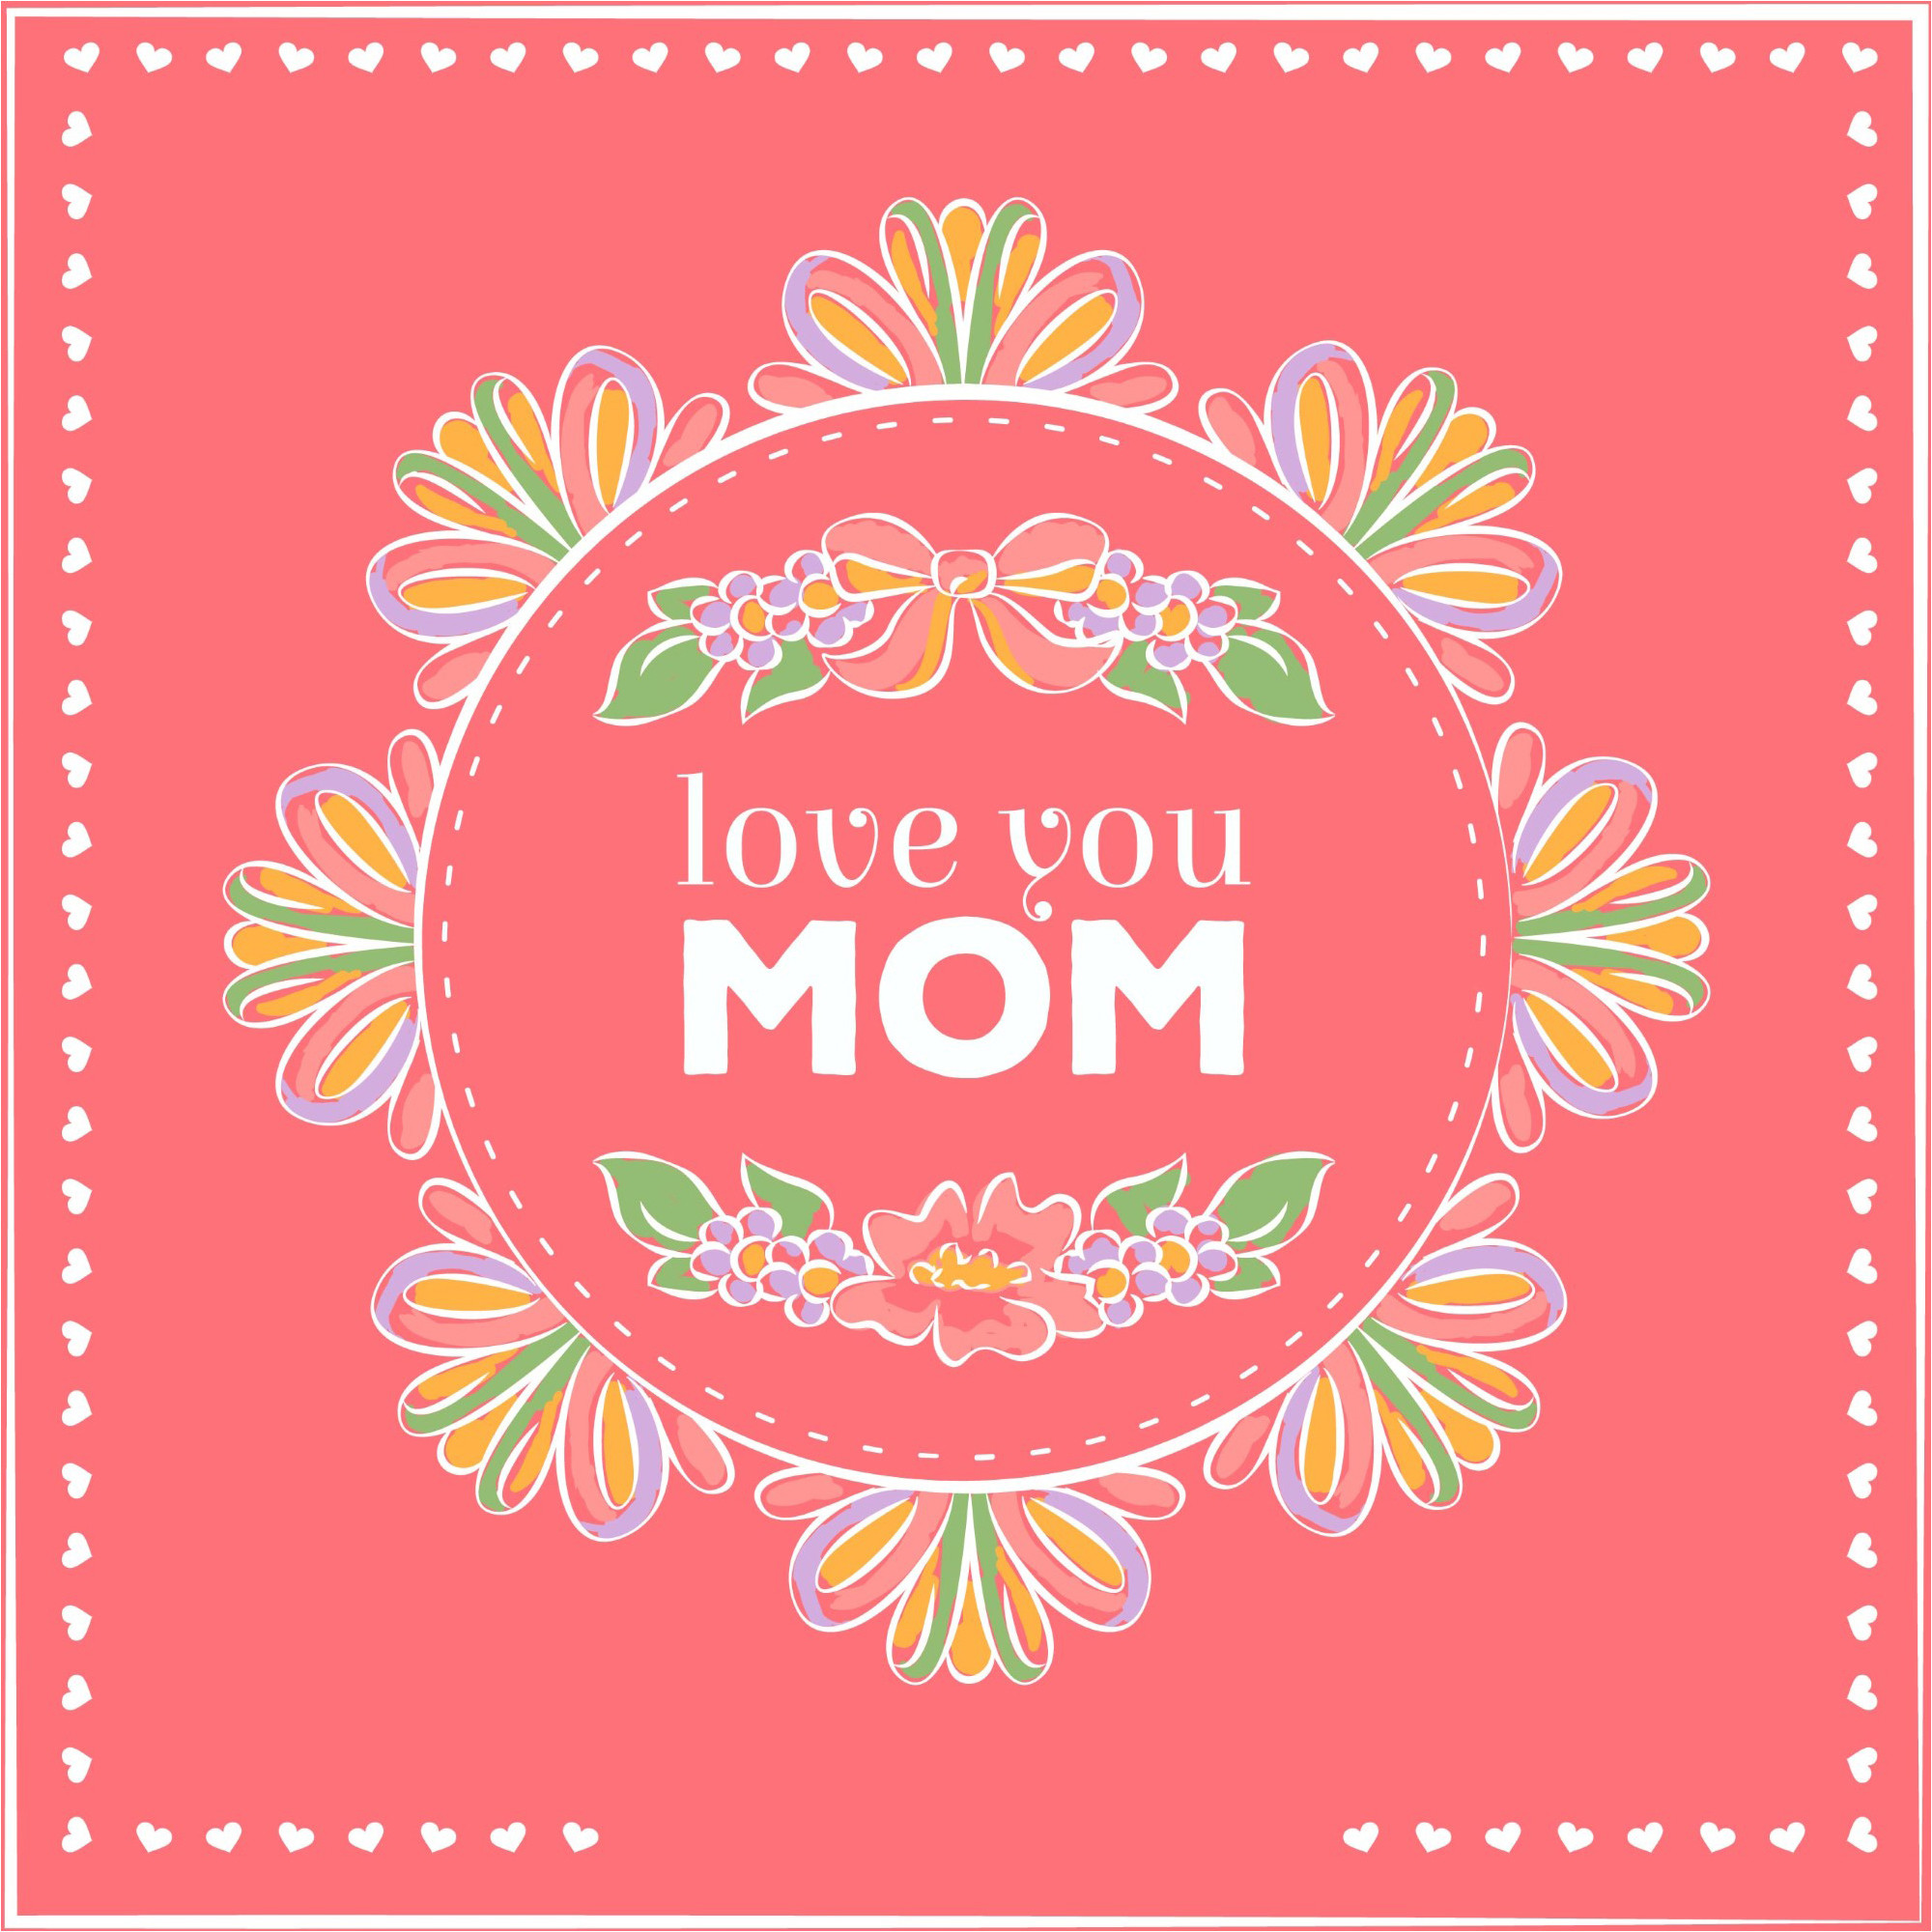 Love You Mom happy Mother's Day Greeting card Design Vector & Wallpaper